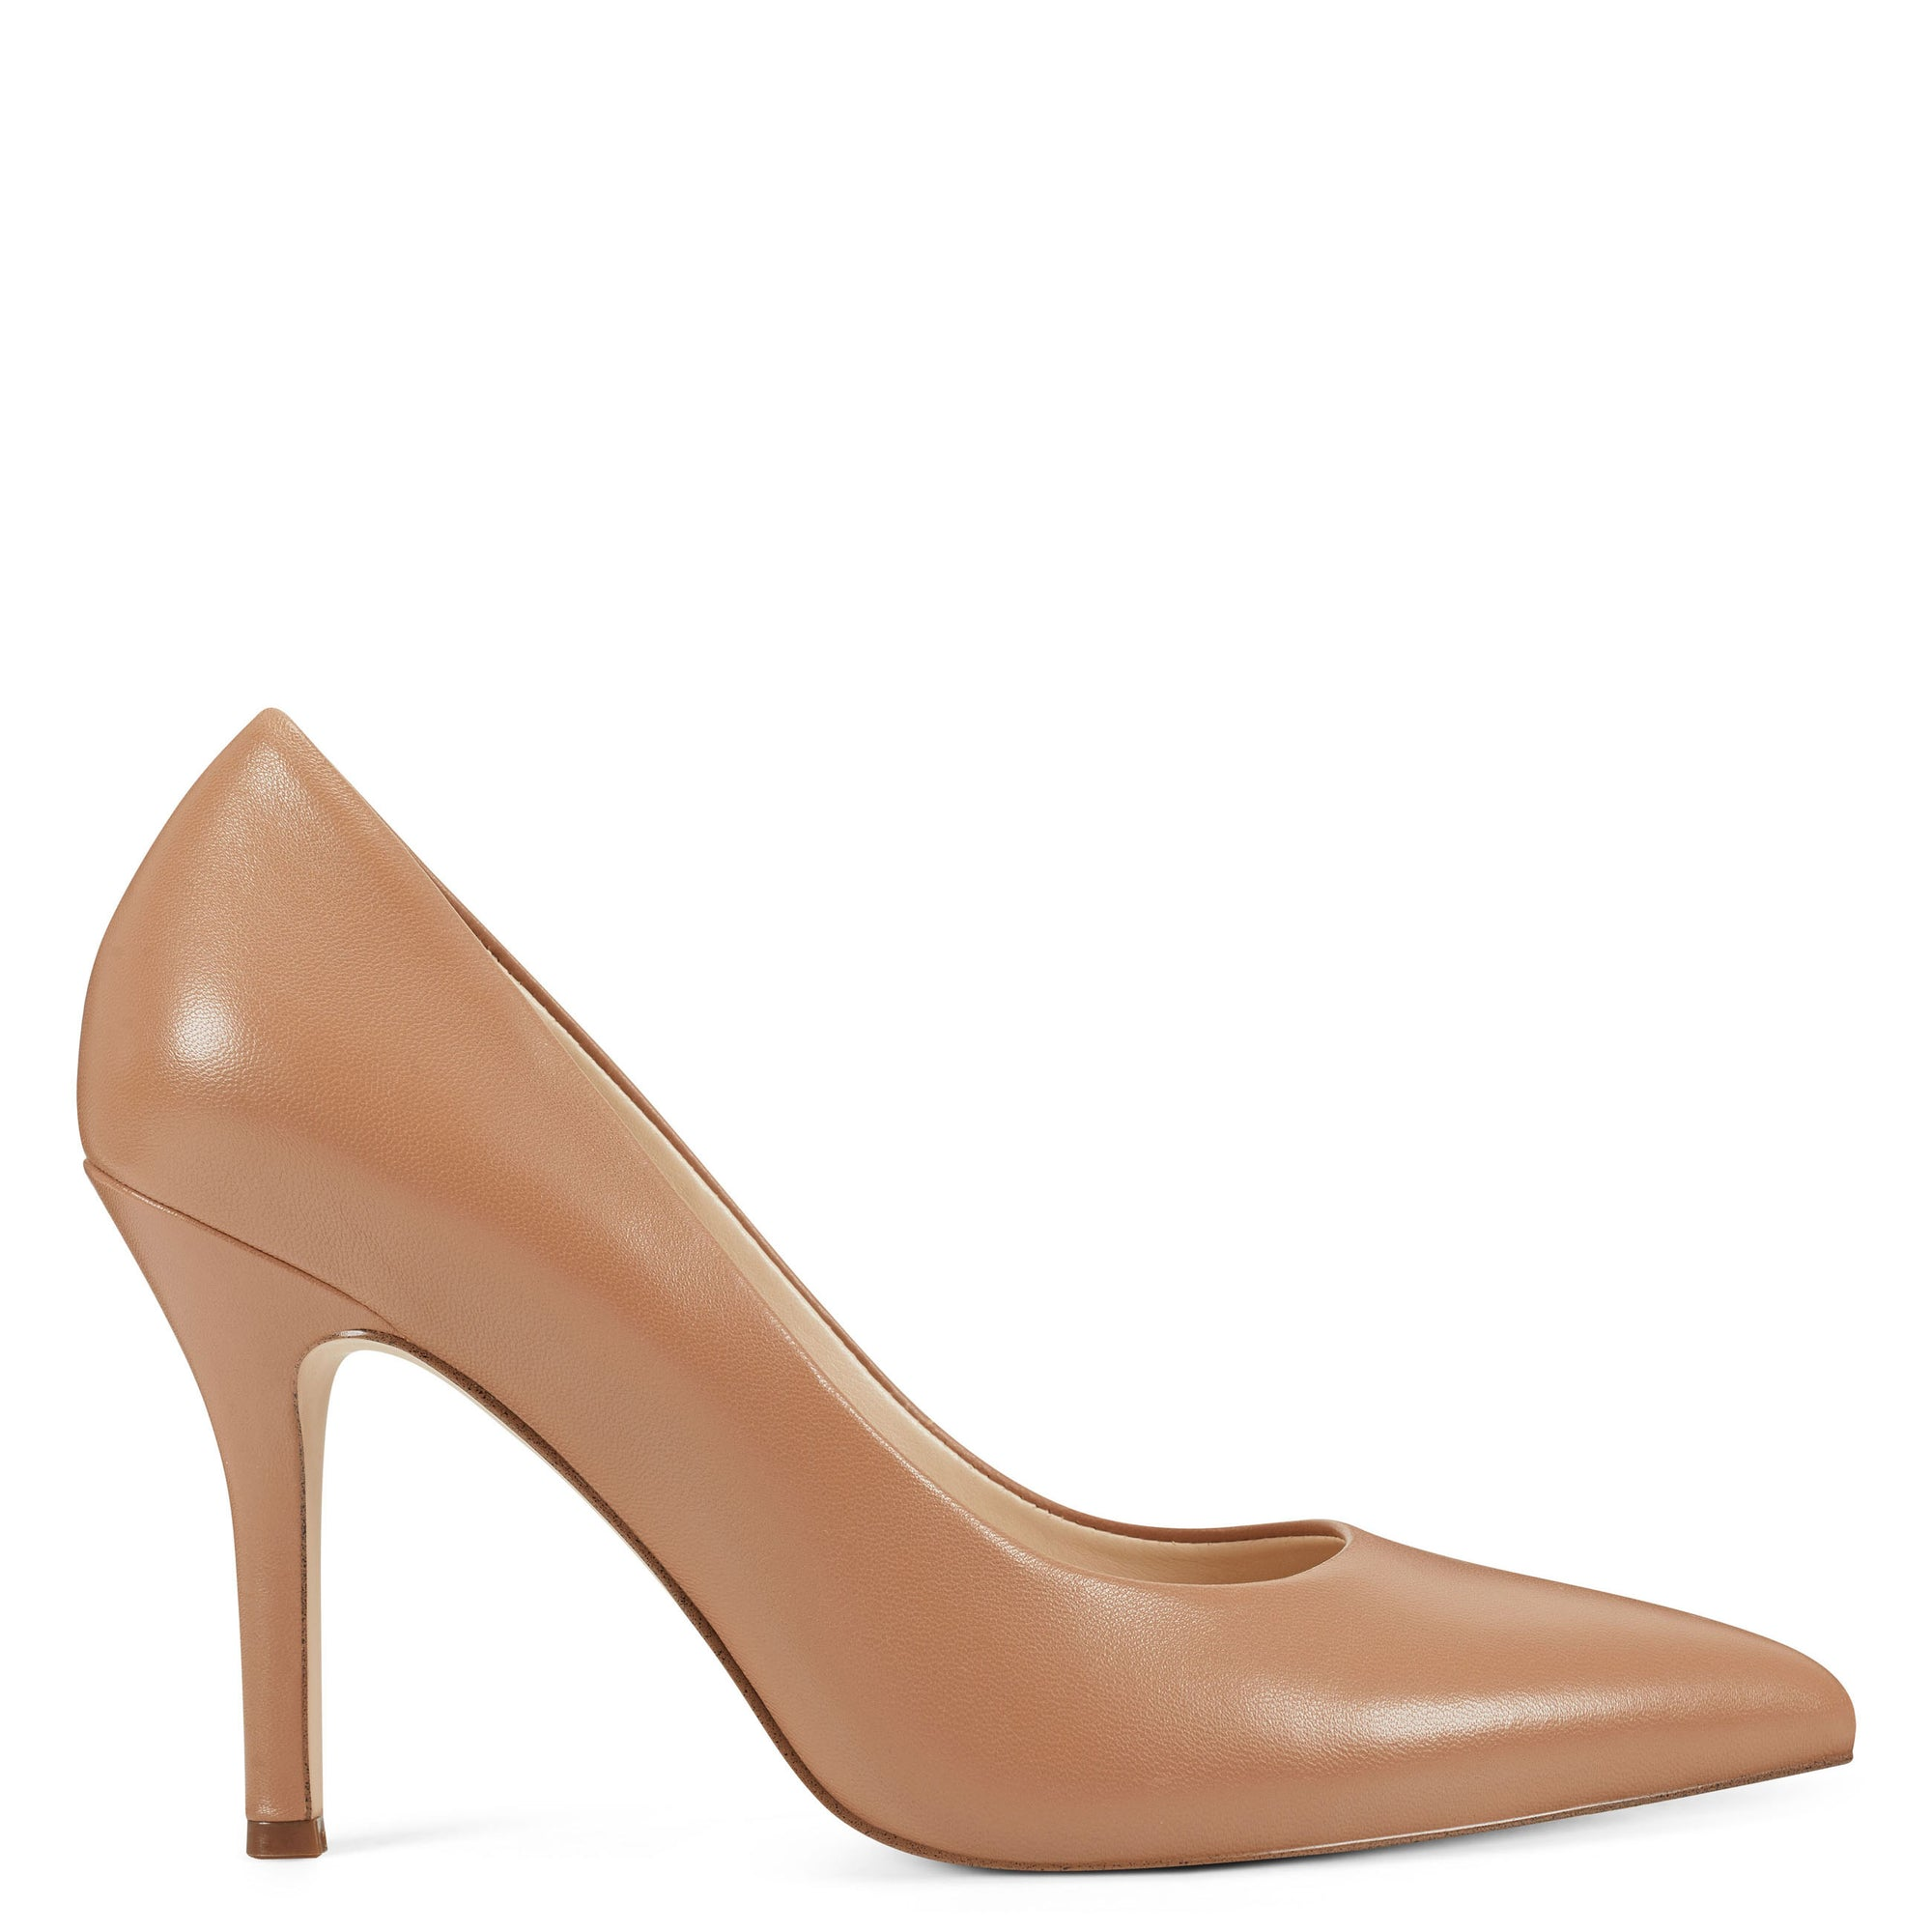 flax-pointy-toe-pumps-in-medium-tan